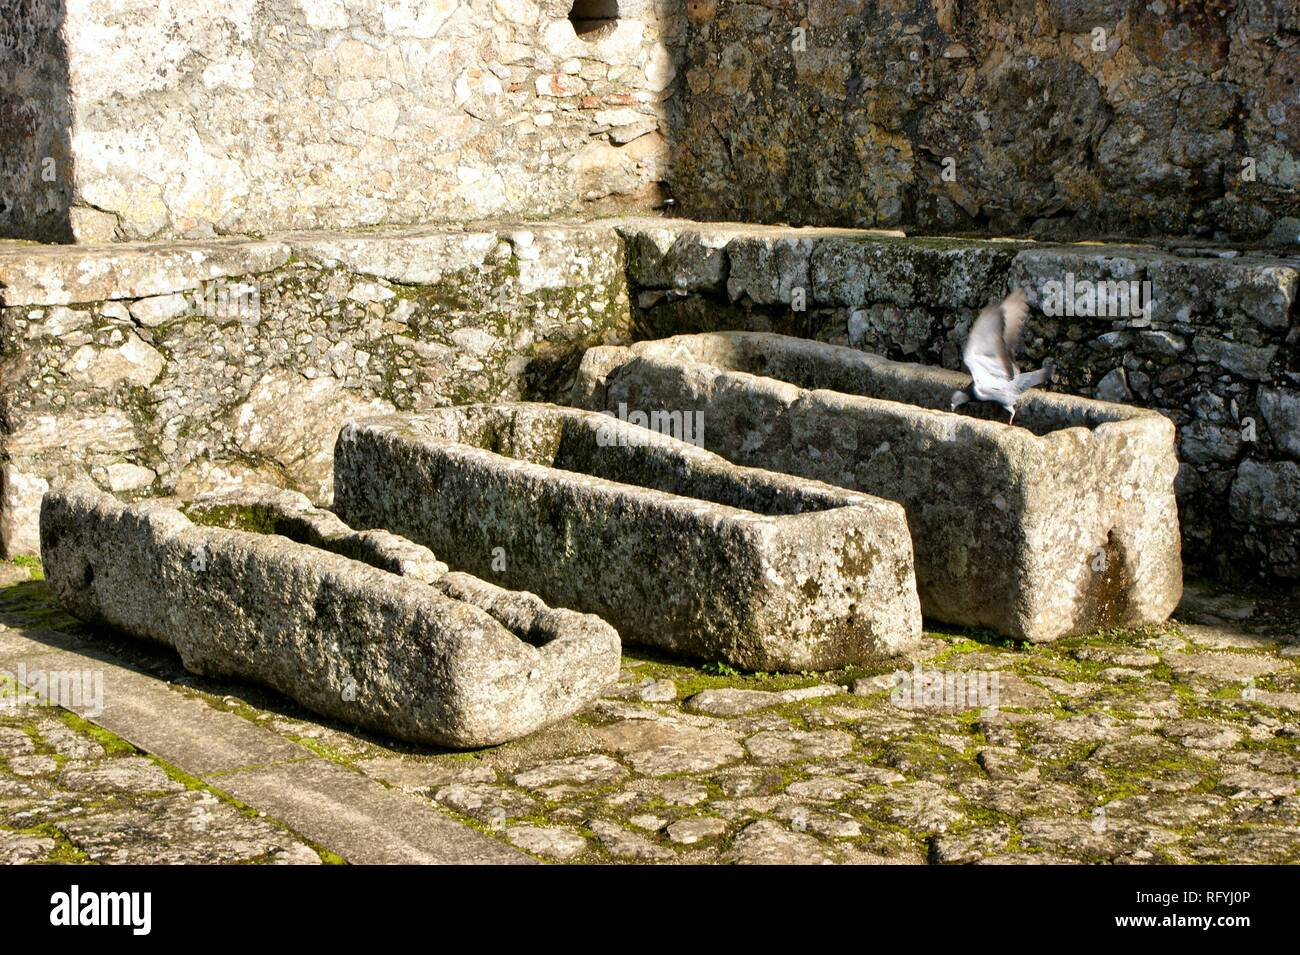 Ancient tombs in Santa Maria da Feira castle, Portugal - Stock Image